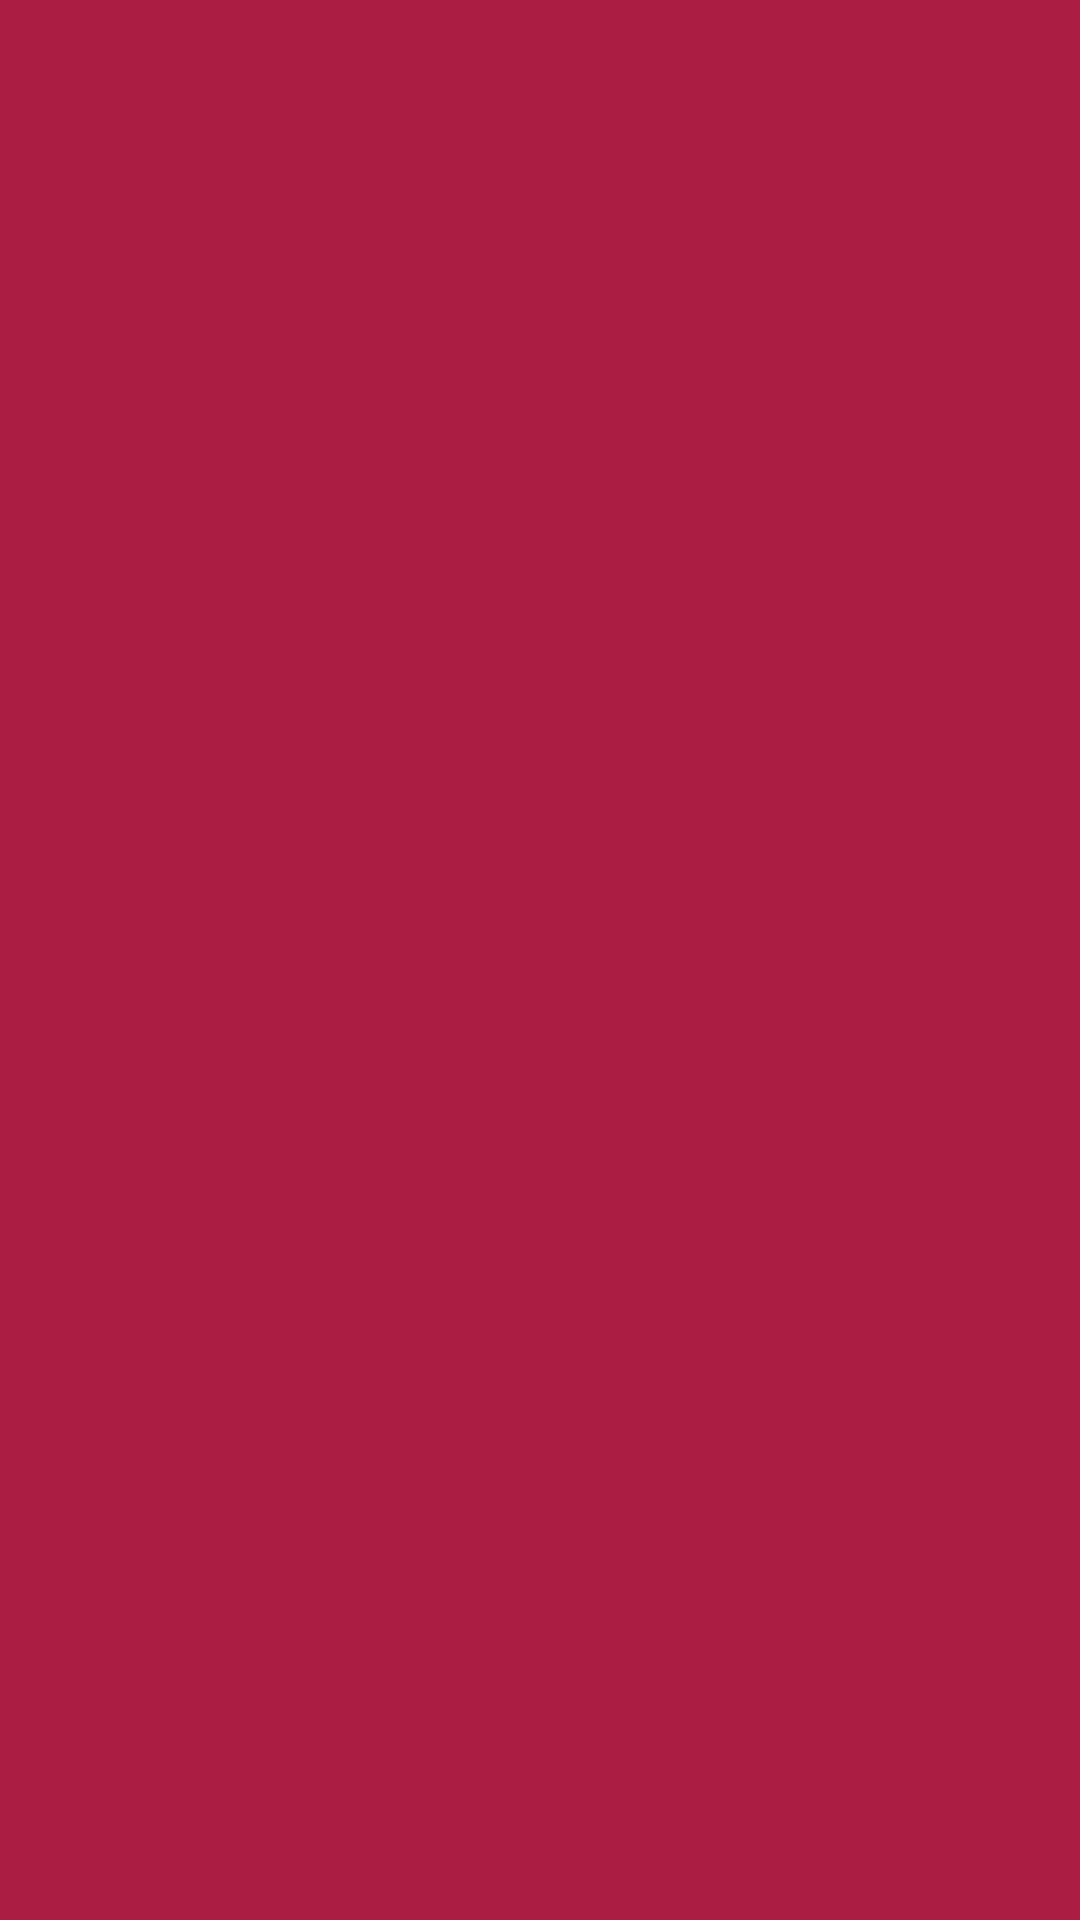 1080x1920 French Wine Solid Color Background